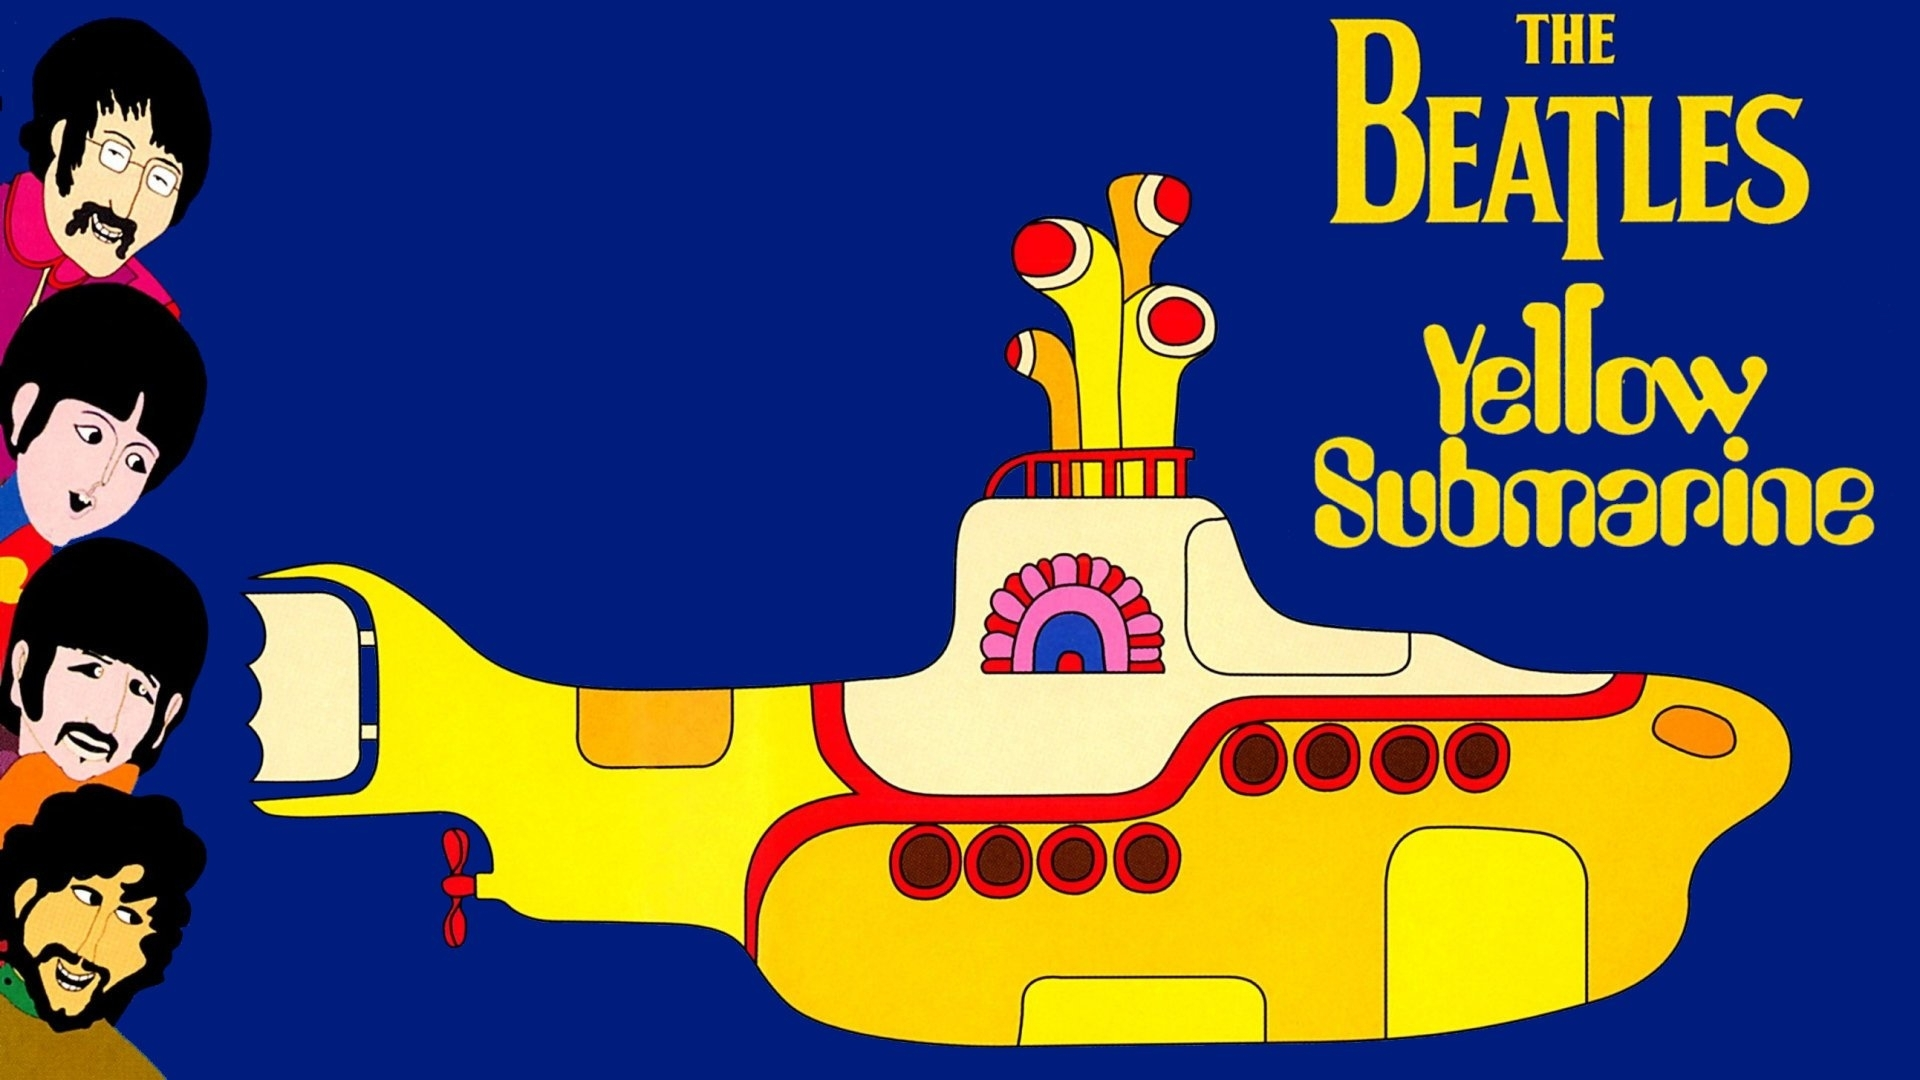 the beatles in yellow submarine full hd fond d'écran and arrière